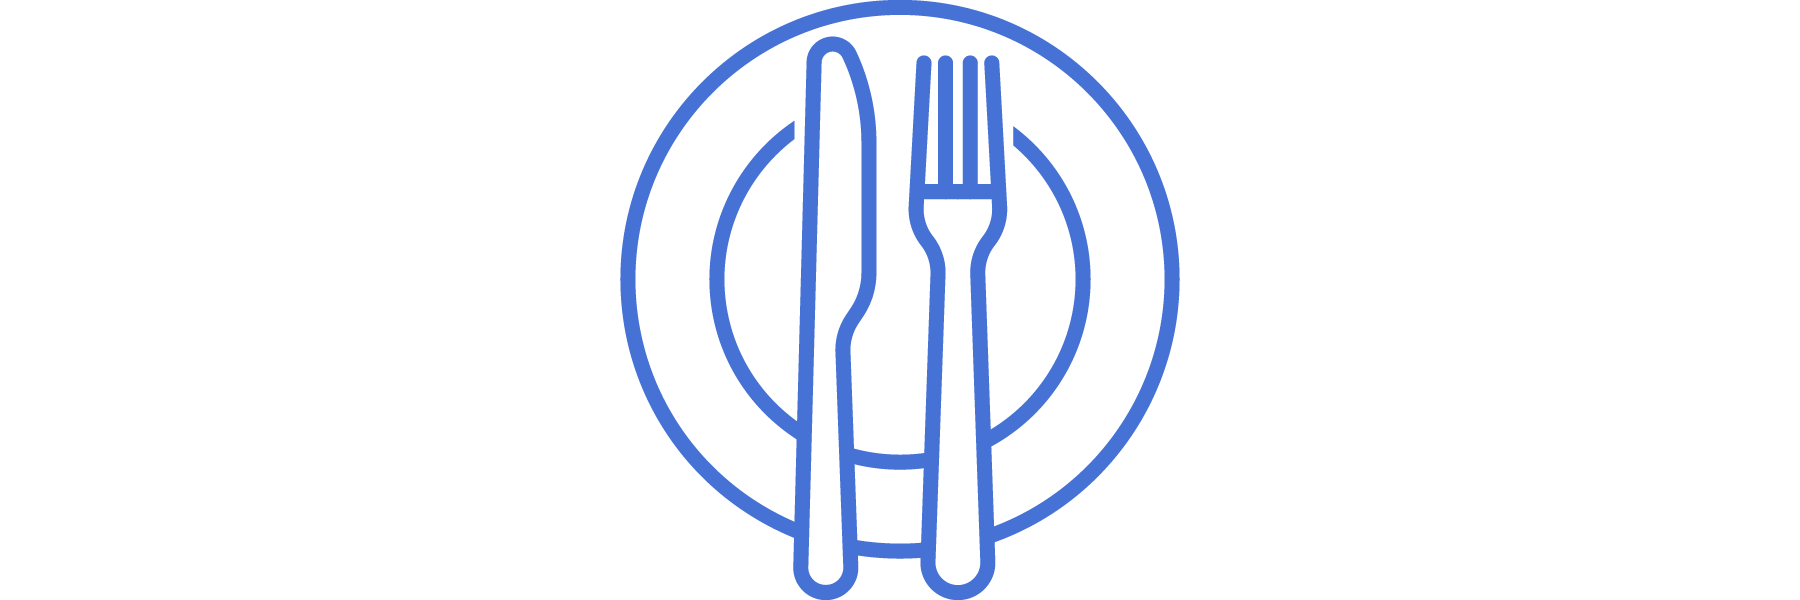 donations-utensils@2x.png